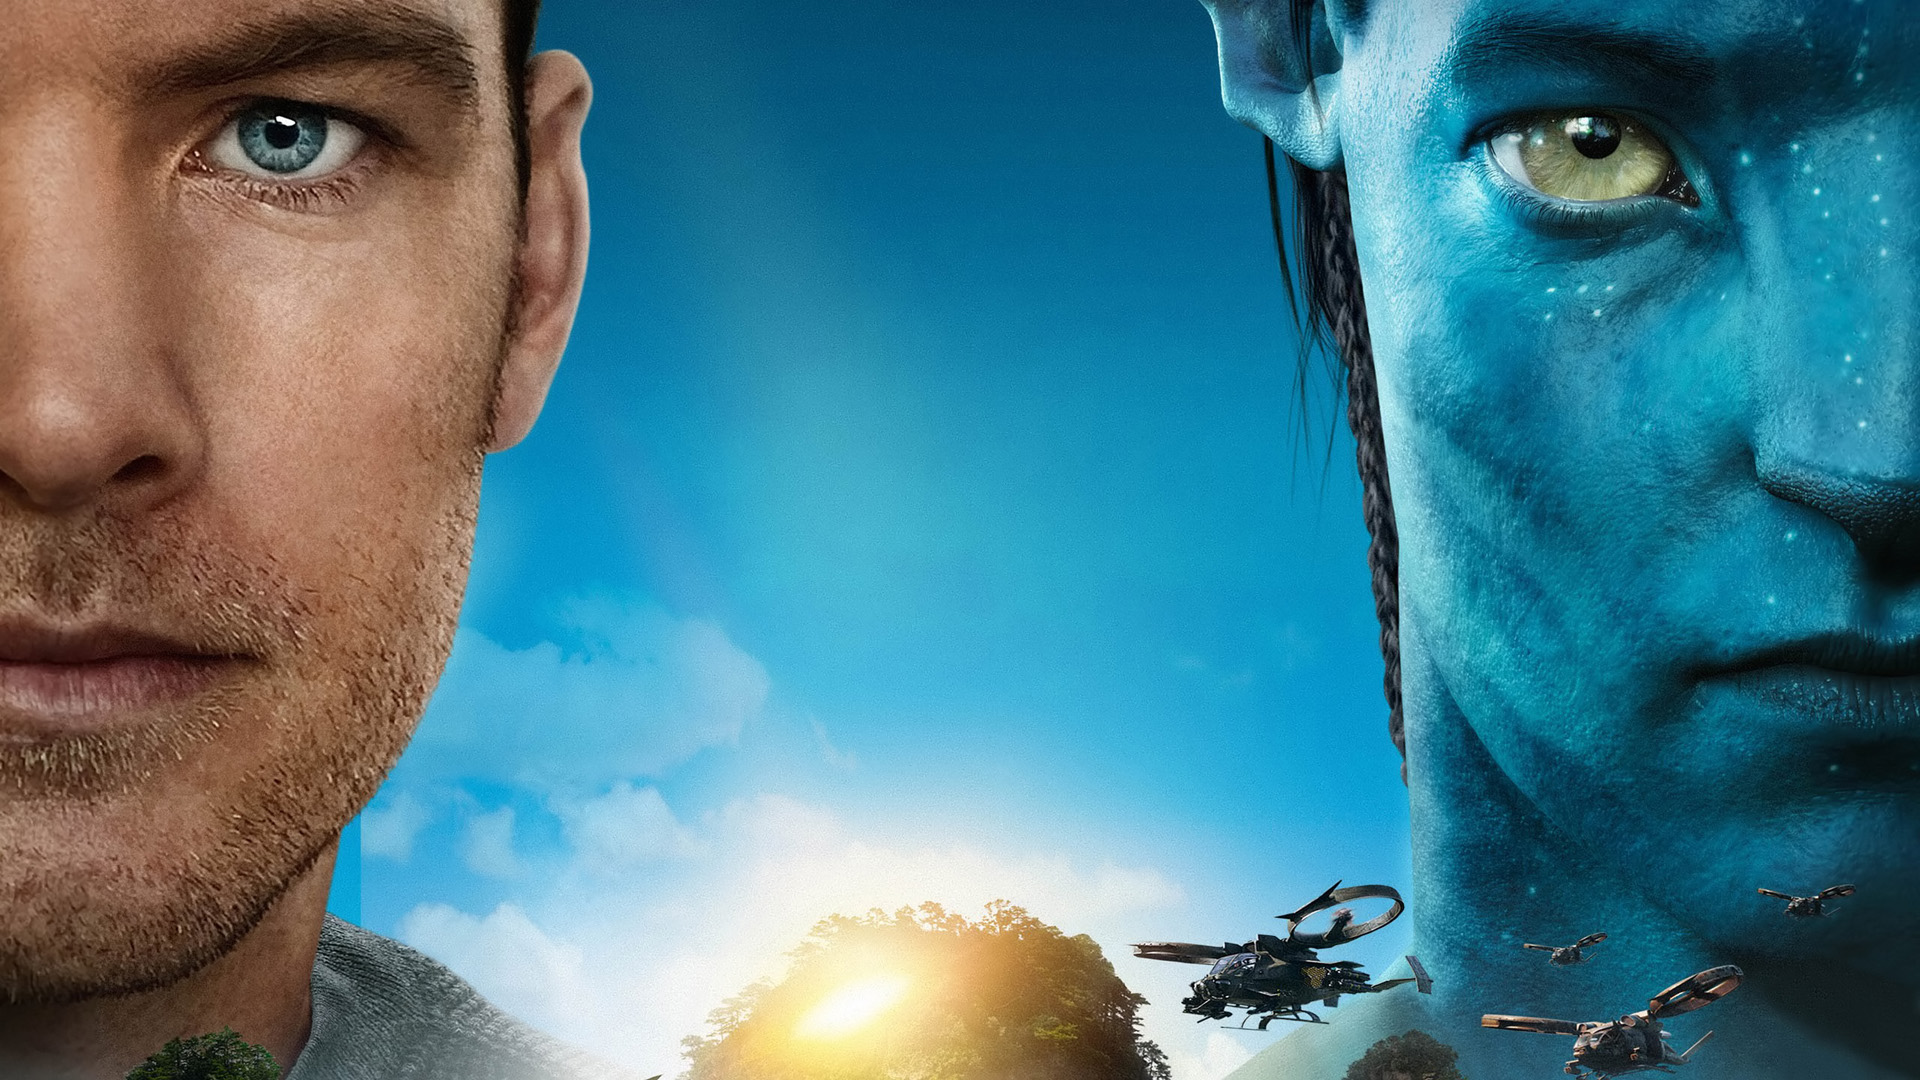 avatar movie wallpapers collection 6 (1920 x 1080 pixels) – digital